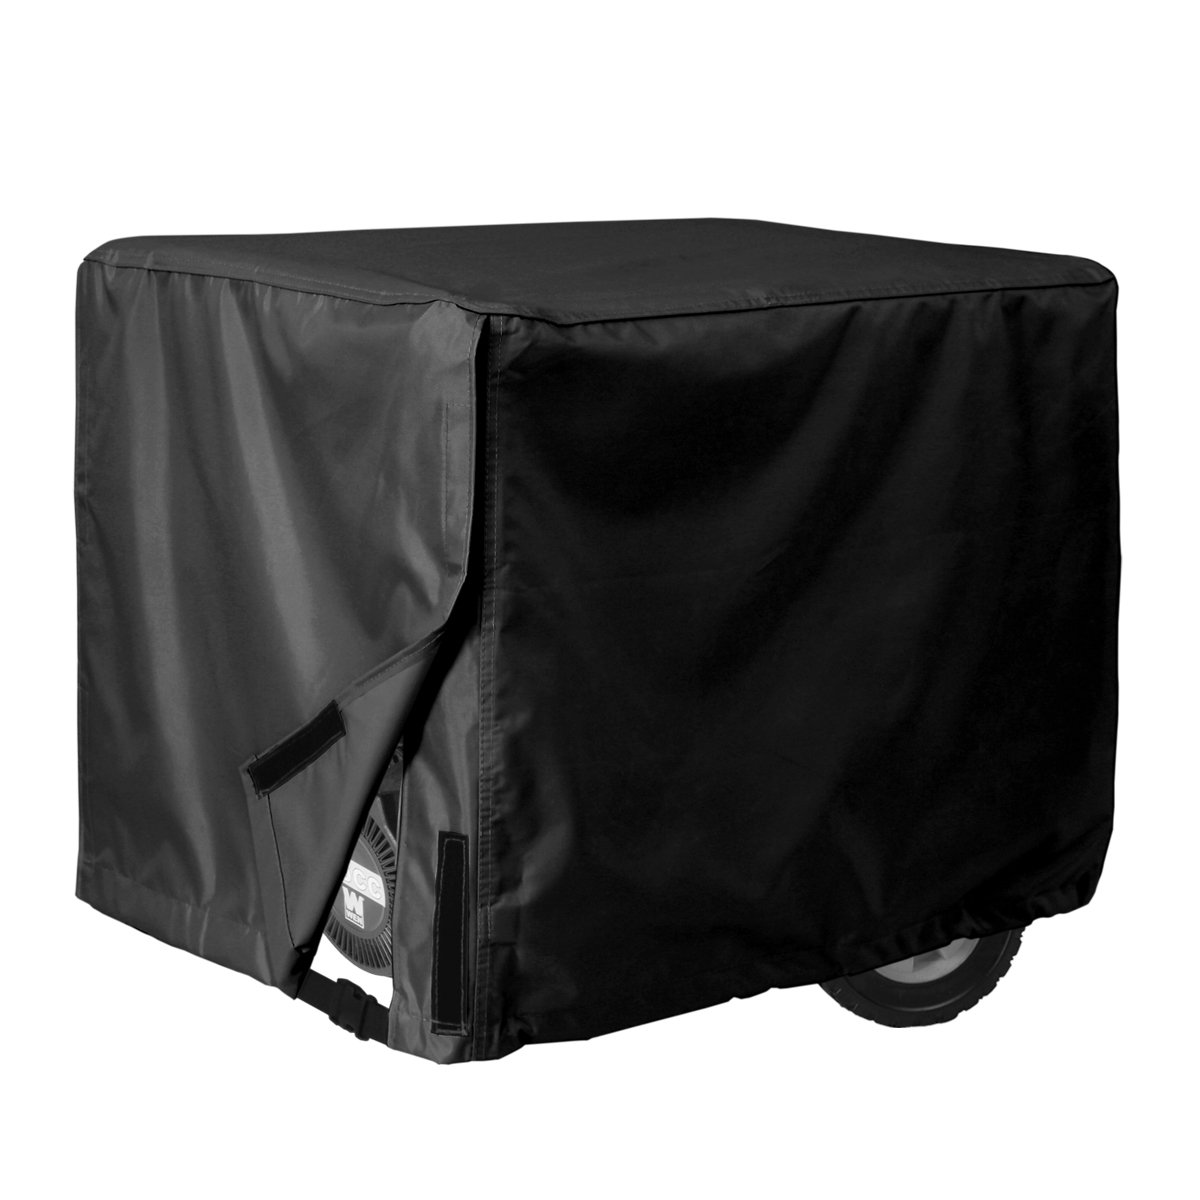 Porch Shield Waterproof Universal Generator Cover 32 x 24 x 24 inch, for Most Generators 5000-10000 Watt, Black by Porch Shield